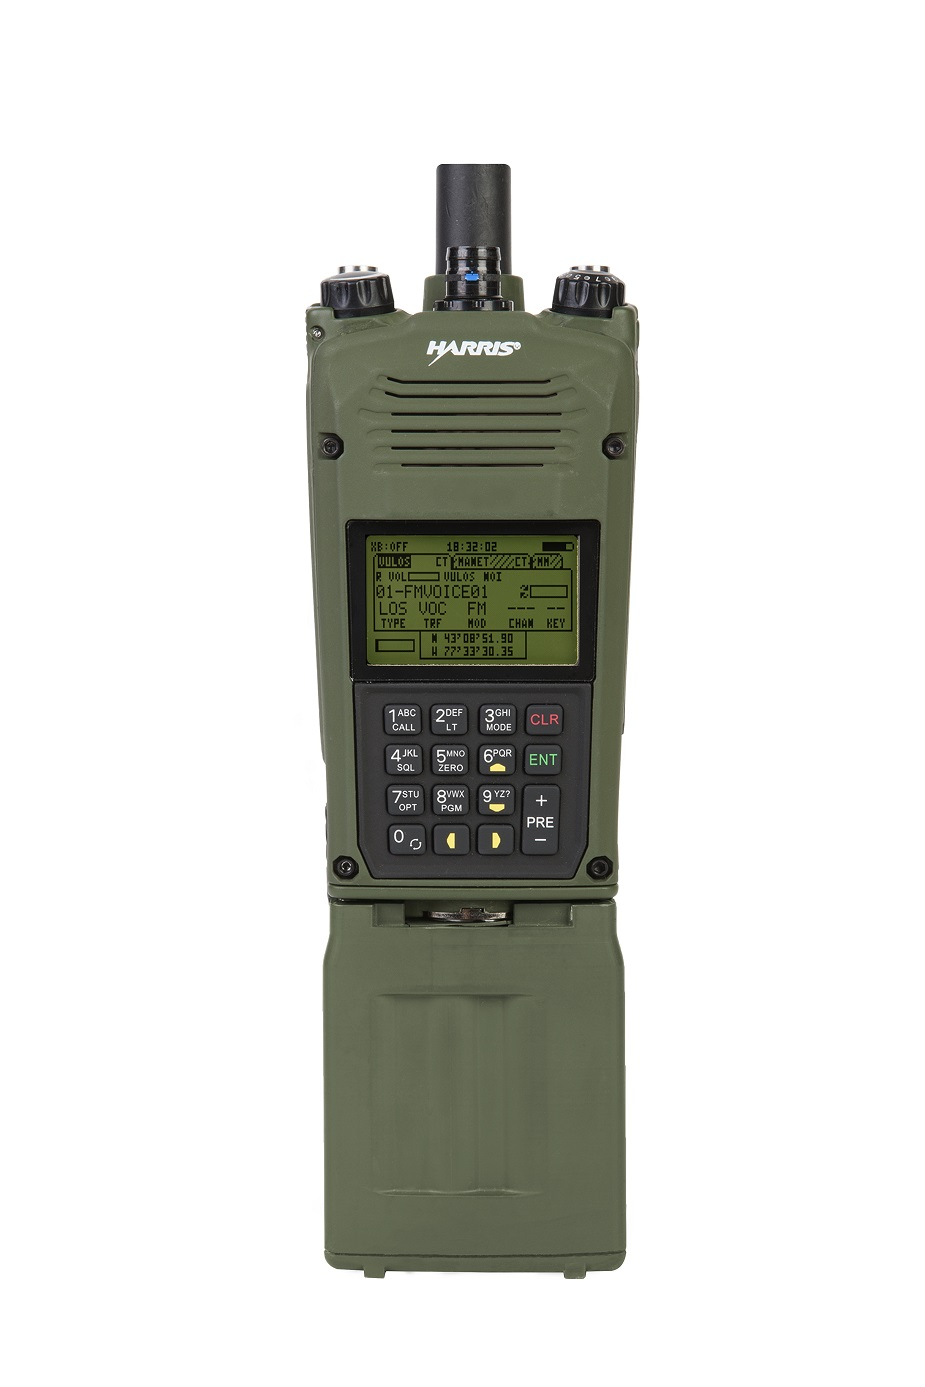 harris corporation an prc 163 radio nsa type1 certification